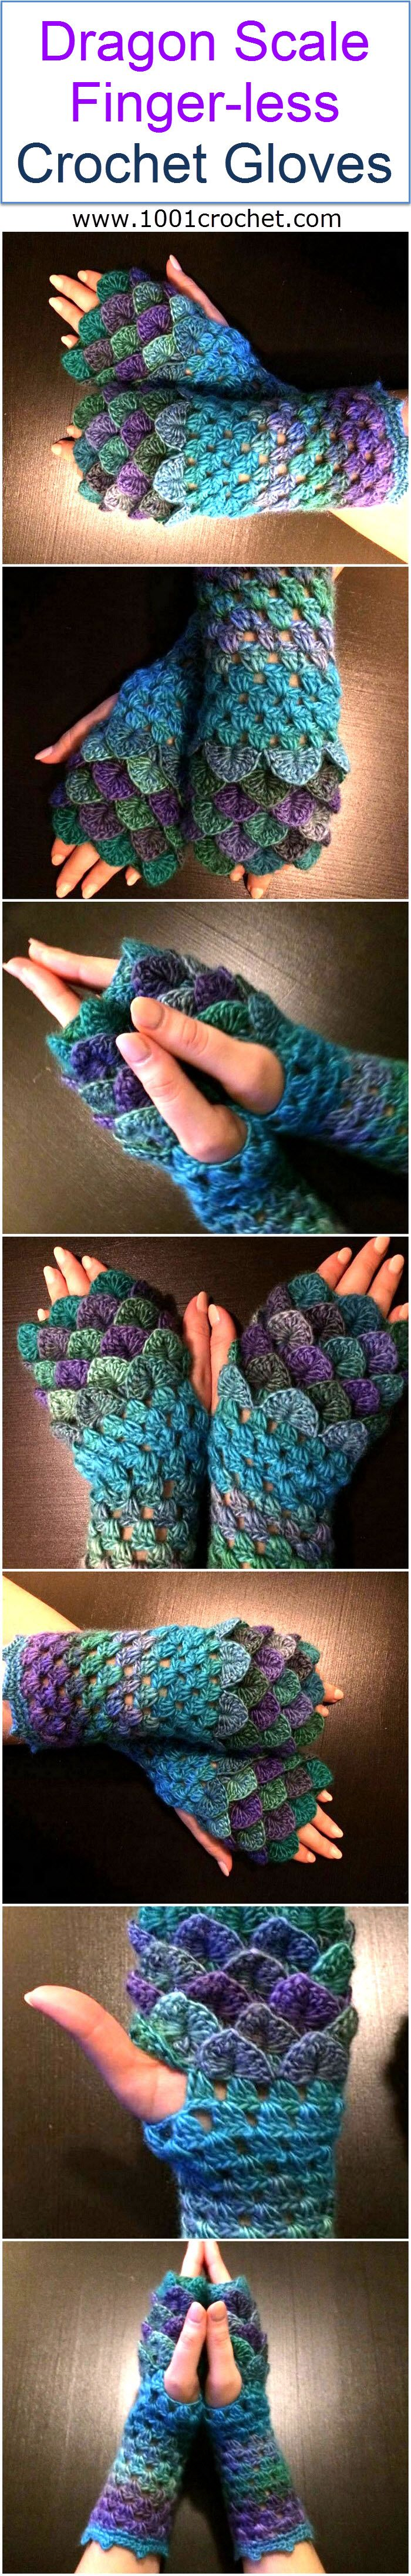 If you too are willing to look a bit different and want to grab the attention then trust me you have to try these weird yet sexy crocheted gloves along with some very creepy outfit. They are not only named as dragon scale gloves but they really look like the one.